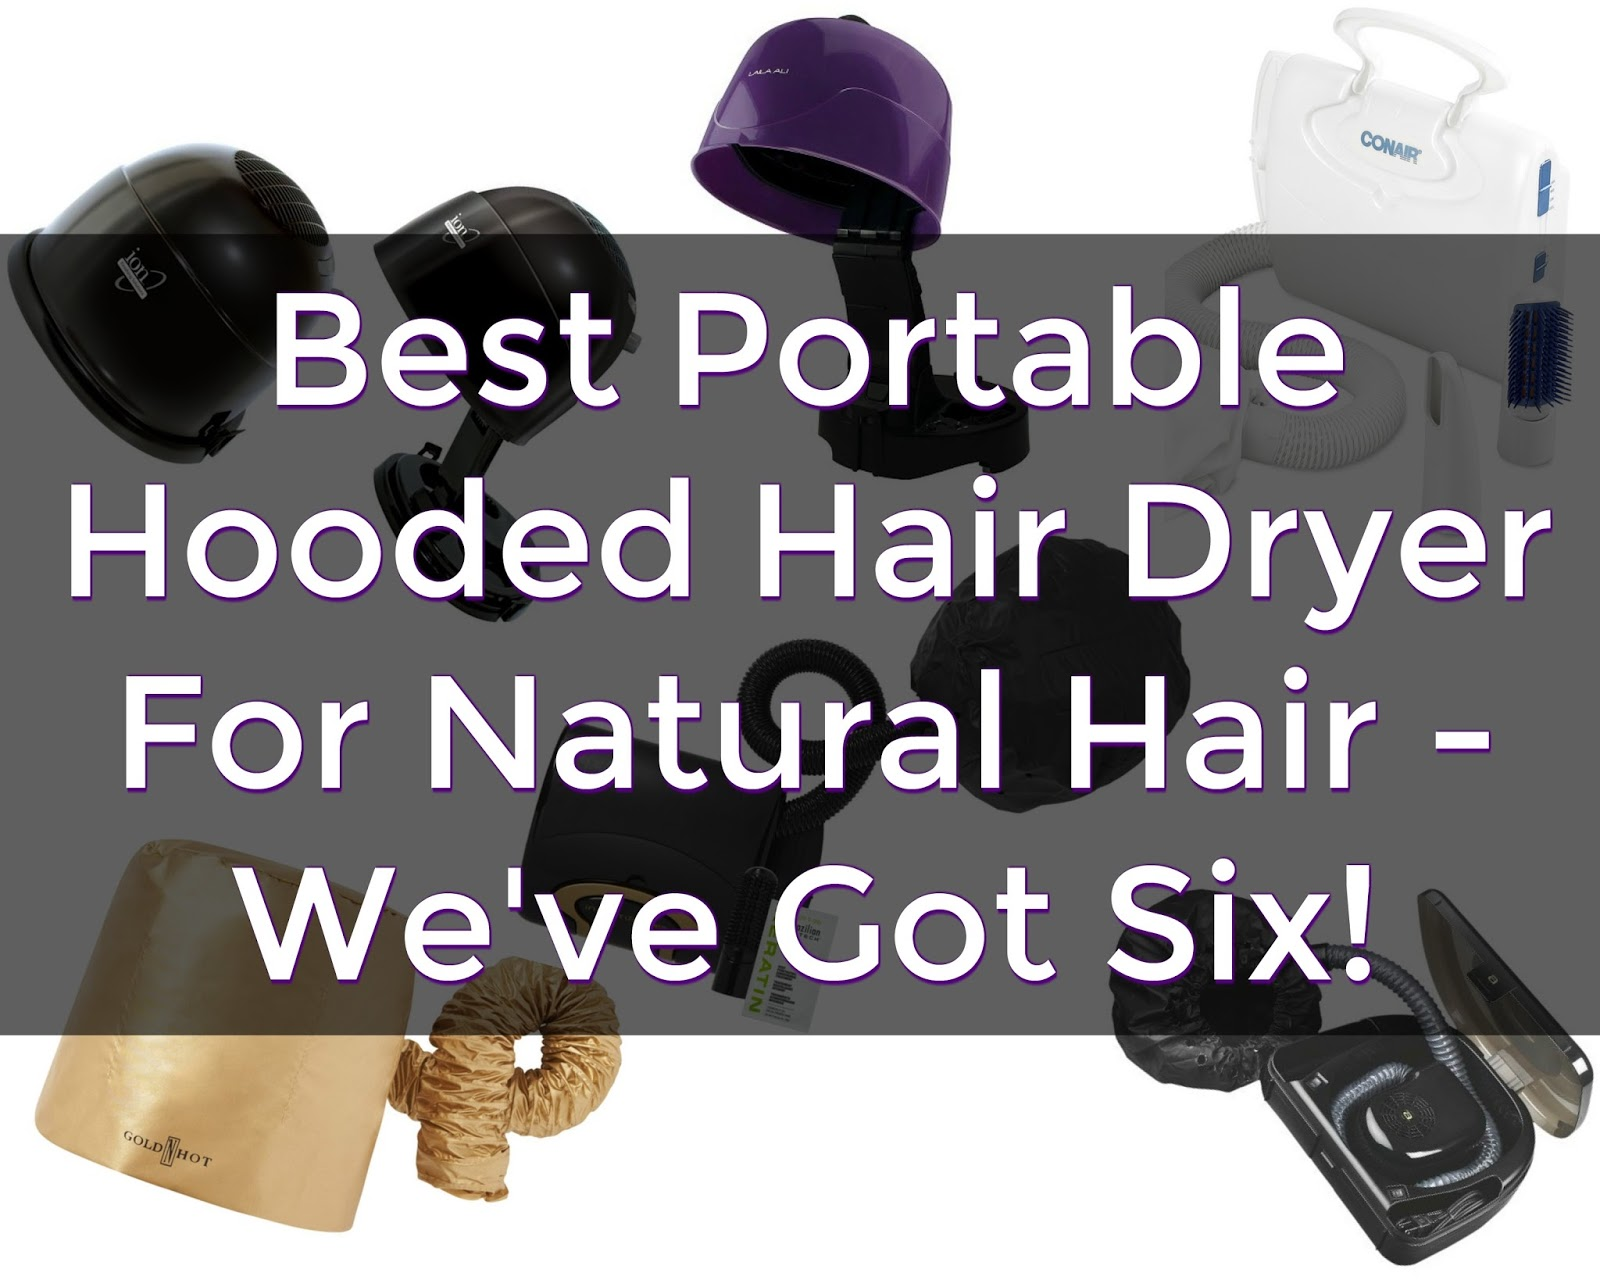 Best Portable Hooded Hair Dryer For Natural Hair – We've Got Six!